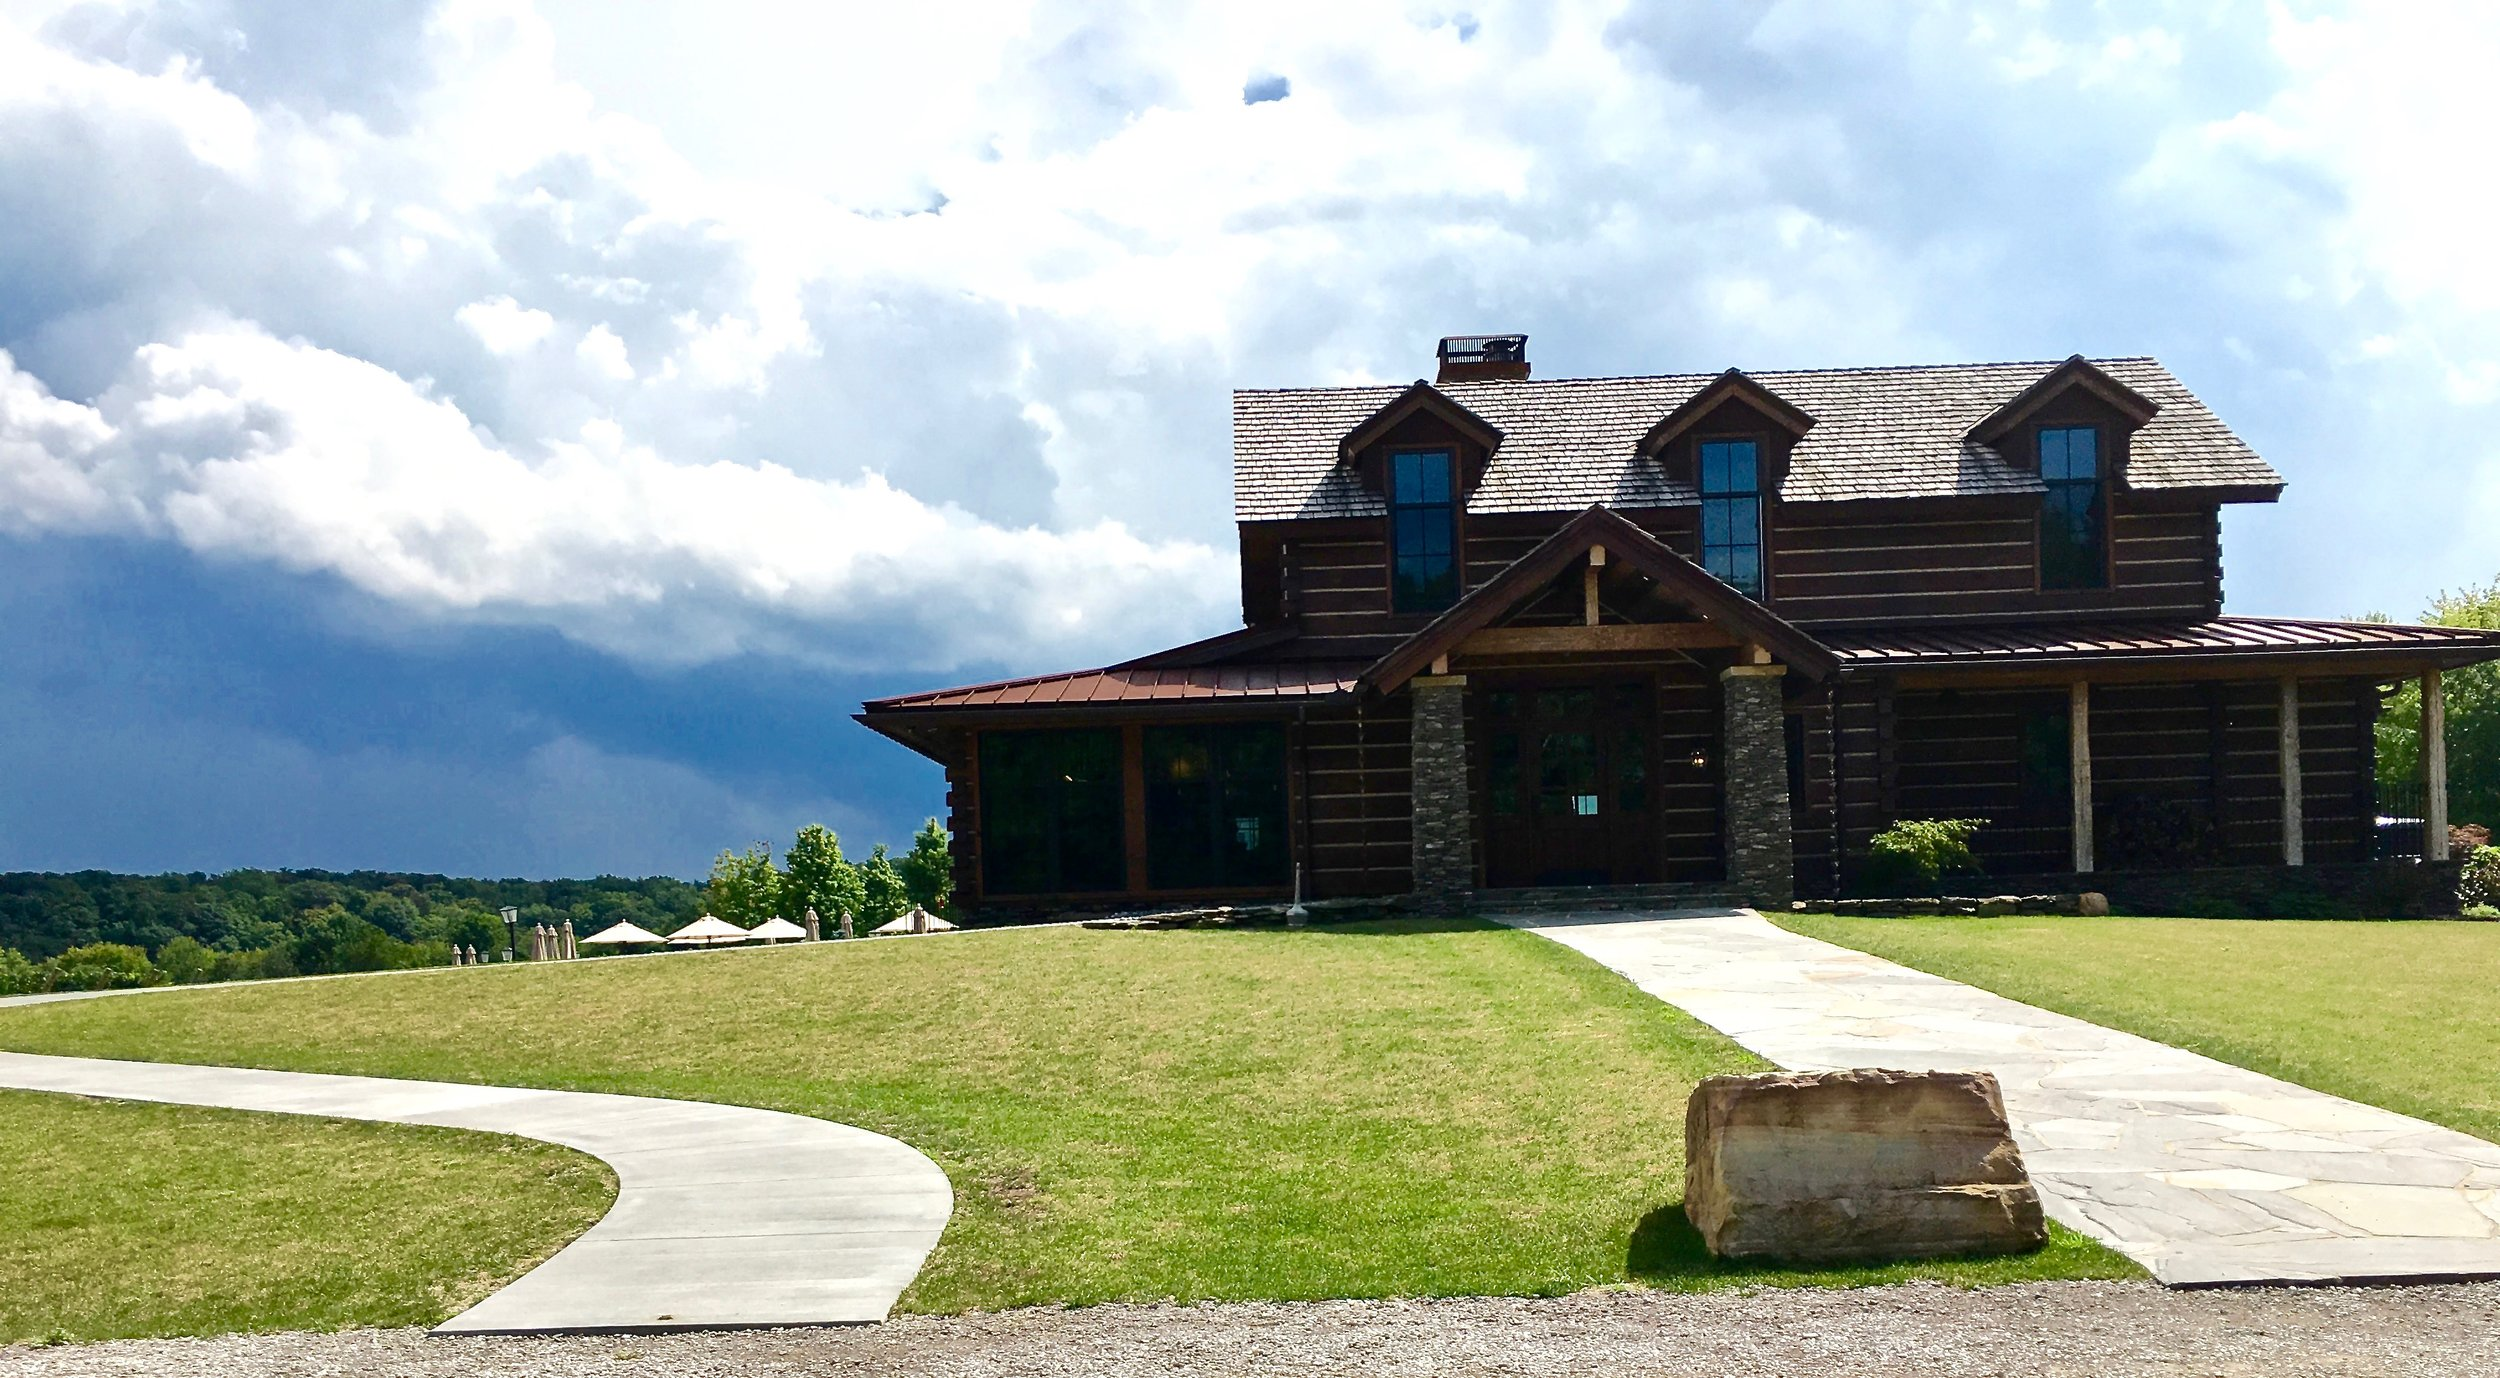 Entrance to Laurentia winery